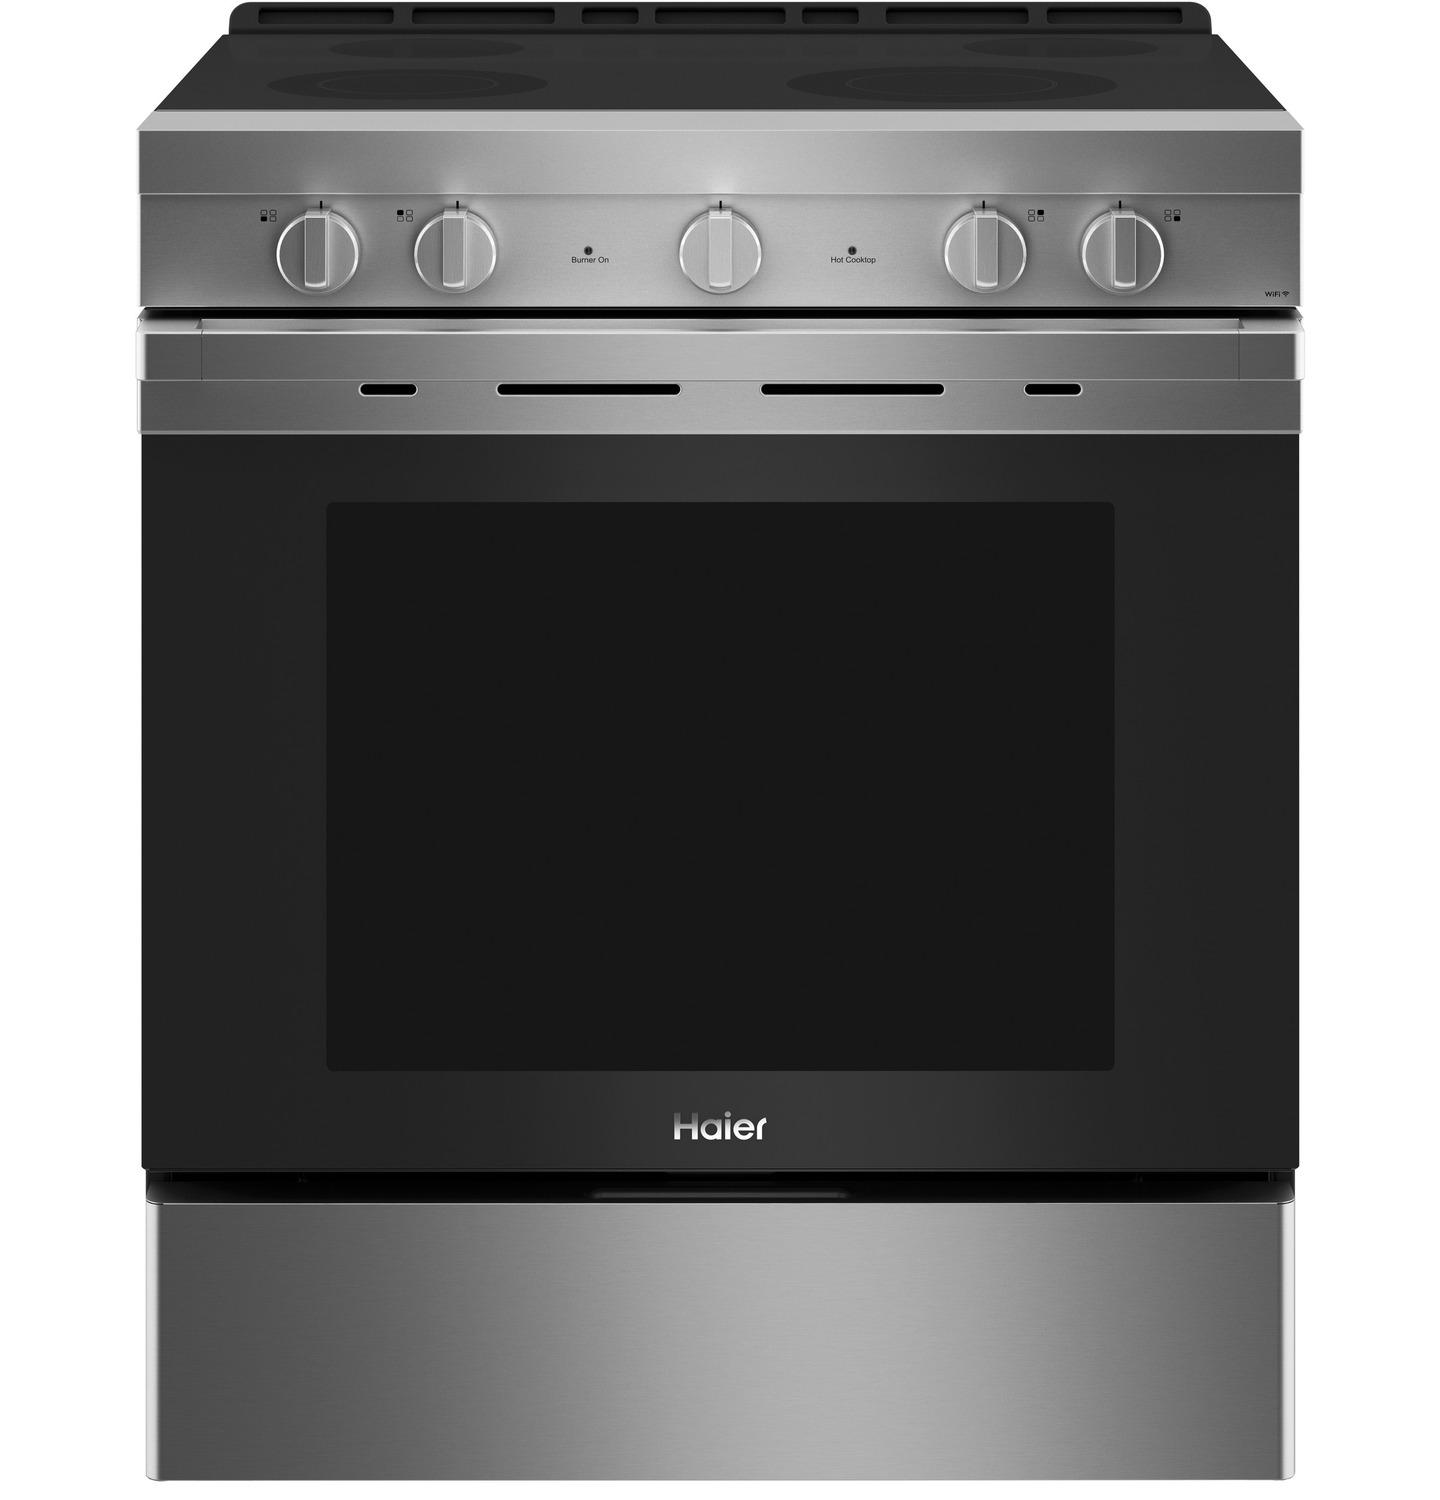 "Haier30"" Smart Slide-In Electric Range With Convection"